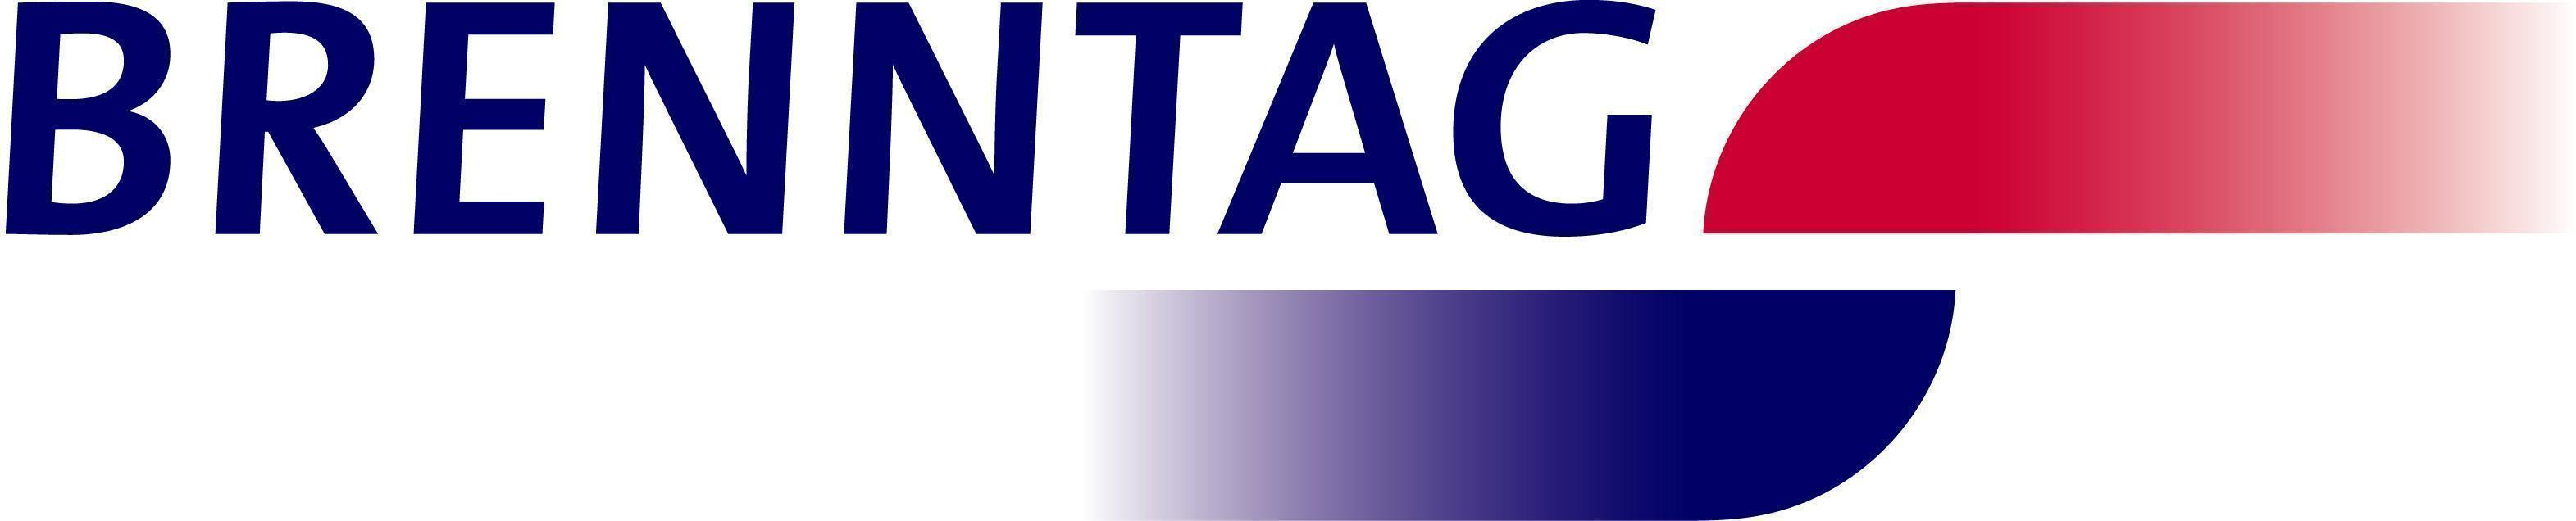 Brenntag Group Logo